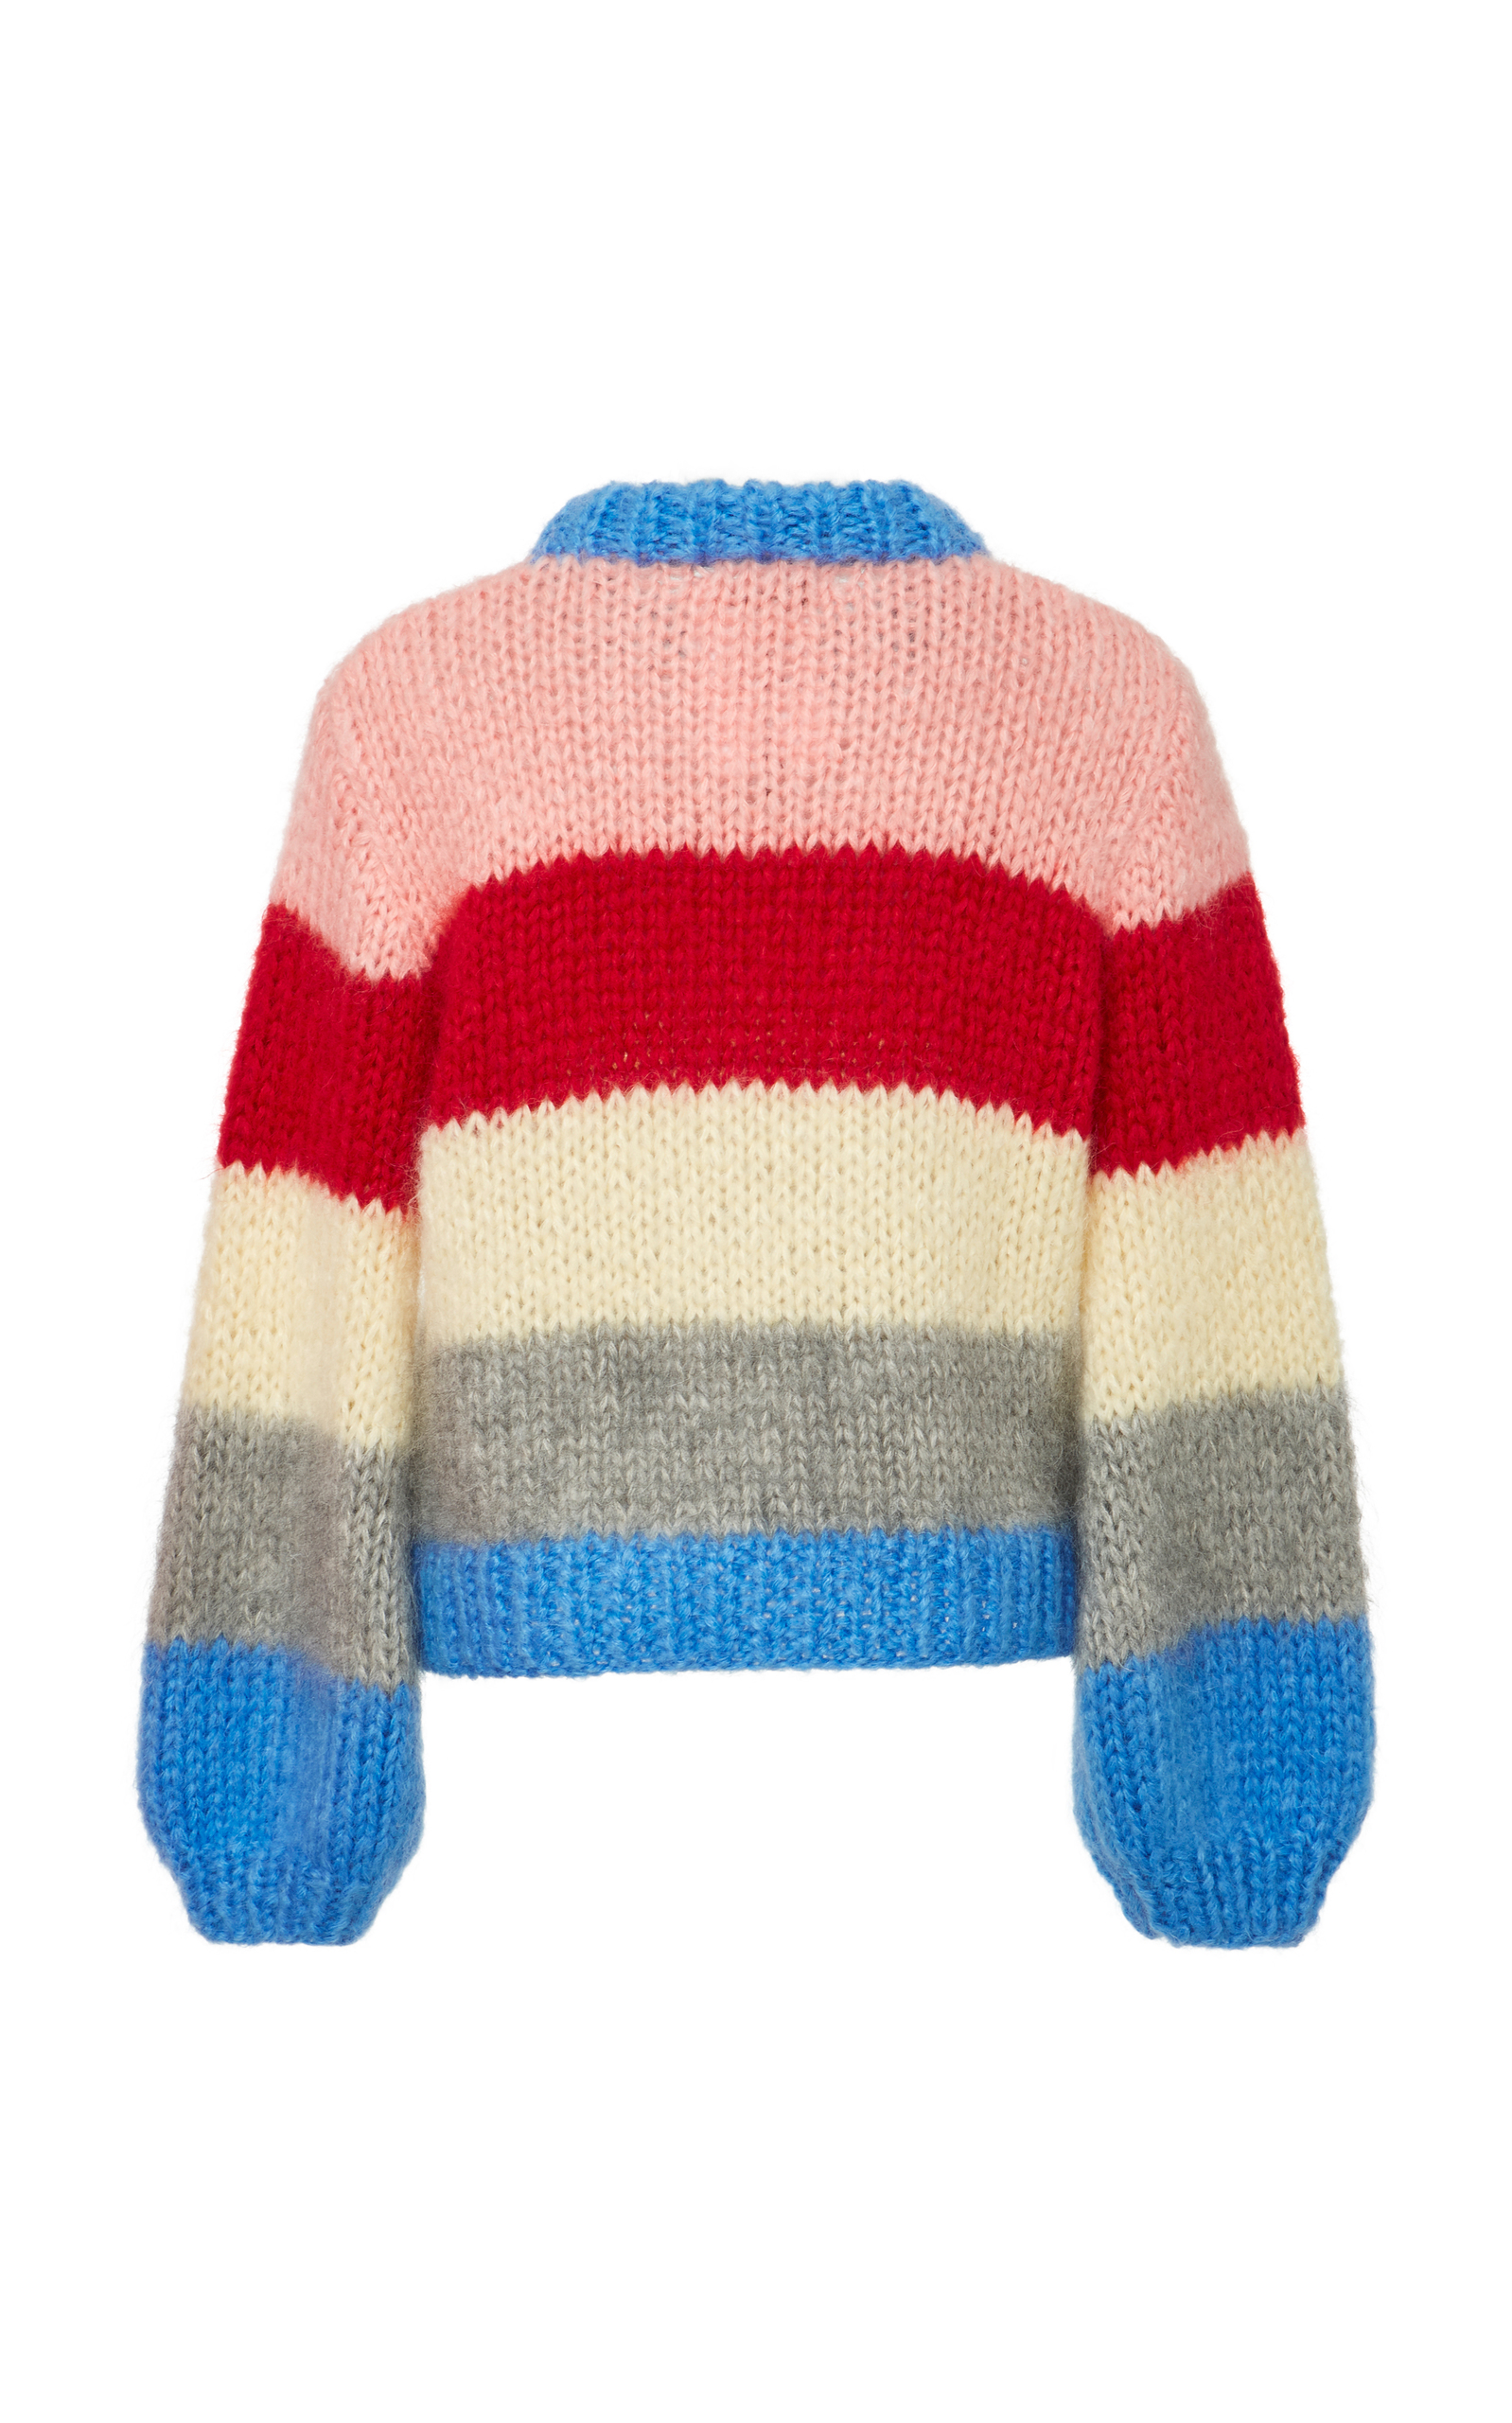 31f7adac The Julliard Striped Mohair and Wool-Blend Sweater by Ganni | Moda ...